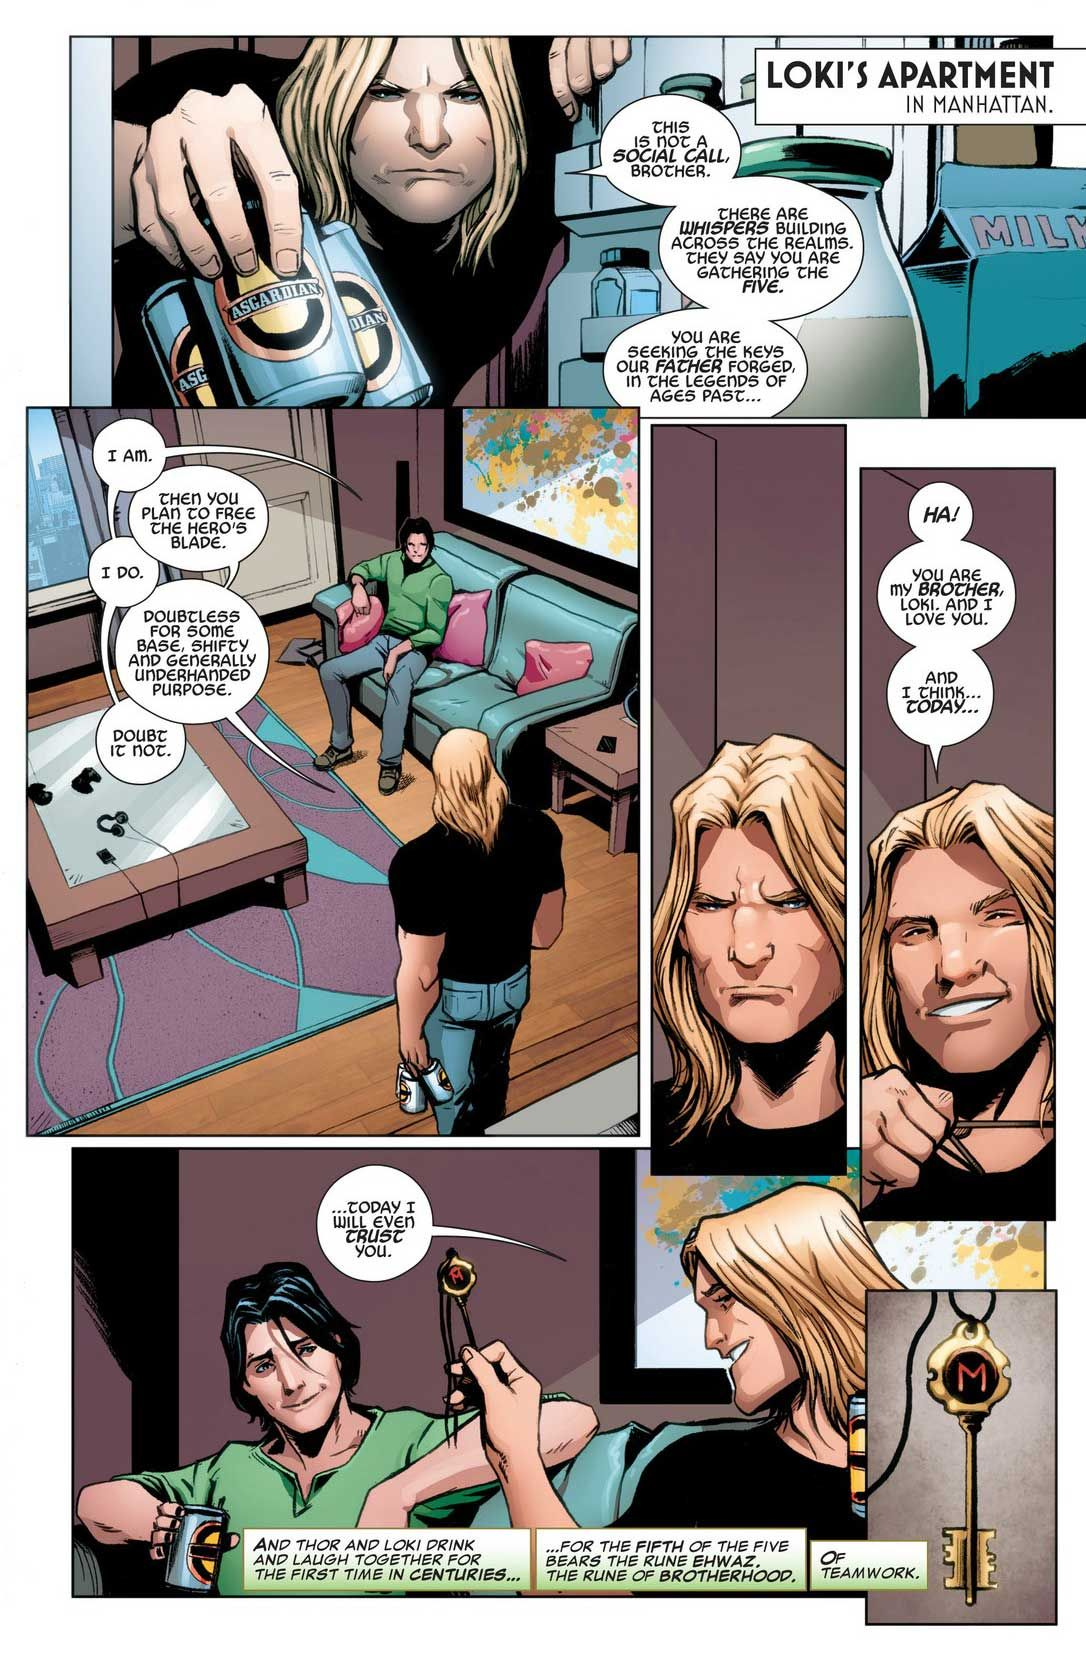 1) Awww.  :'^D  Thor feels like he has his brother back!  T_T  2) Thor, you're not trusting who you think you're trusting.  3) Thor, I am so proud of you for loving--even adoring--Loki for who he is.  4) Thor, you're not adoring who you think you're adoring.  5) Omfg, too many things to say about this one panel.  Do you think Kid Loki would be jealous of this bonding moment between the two?